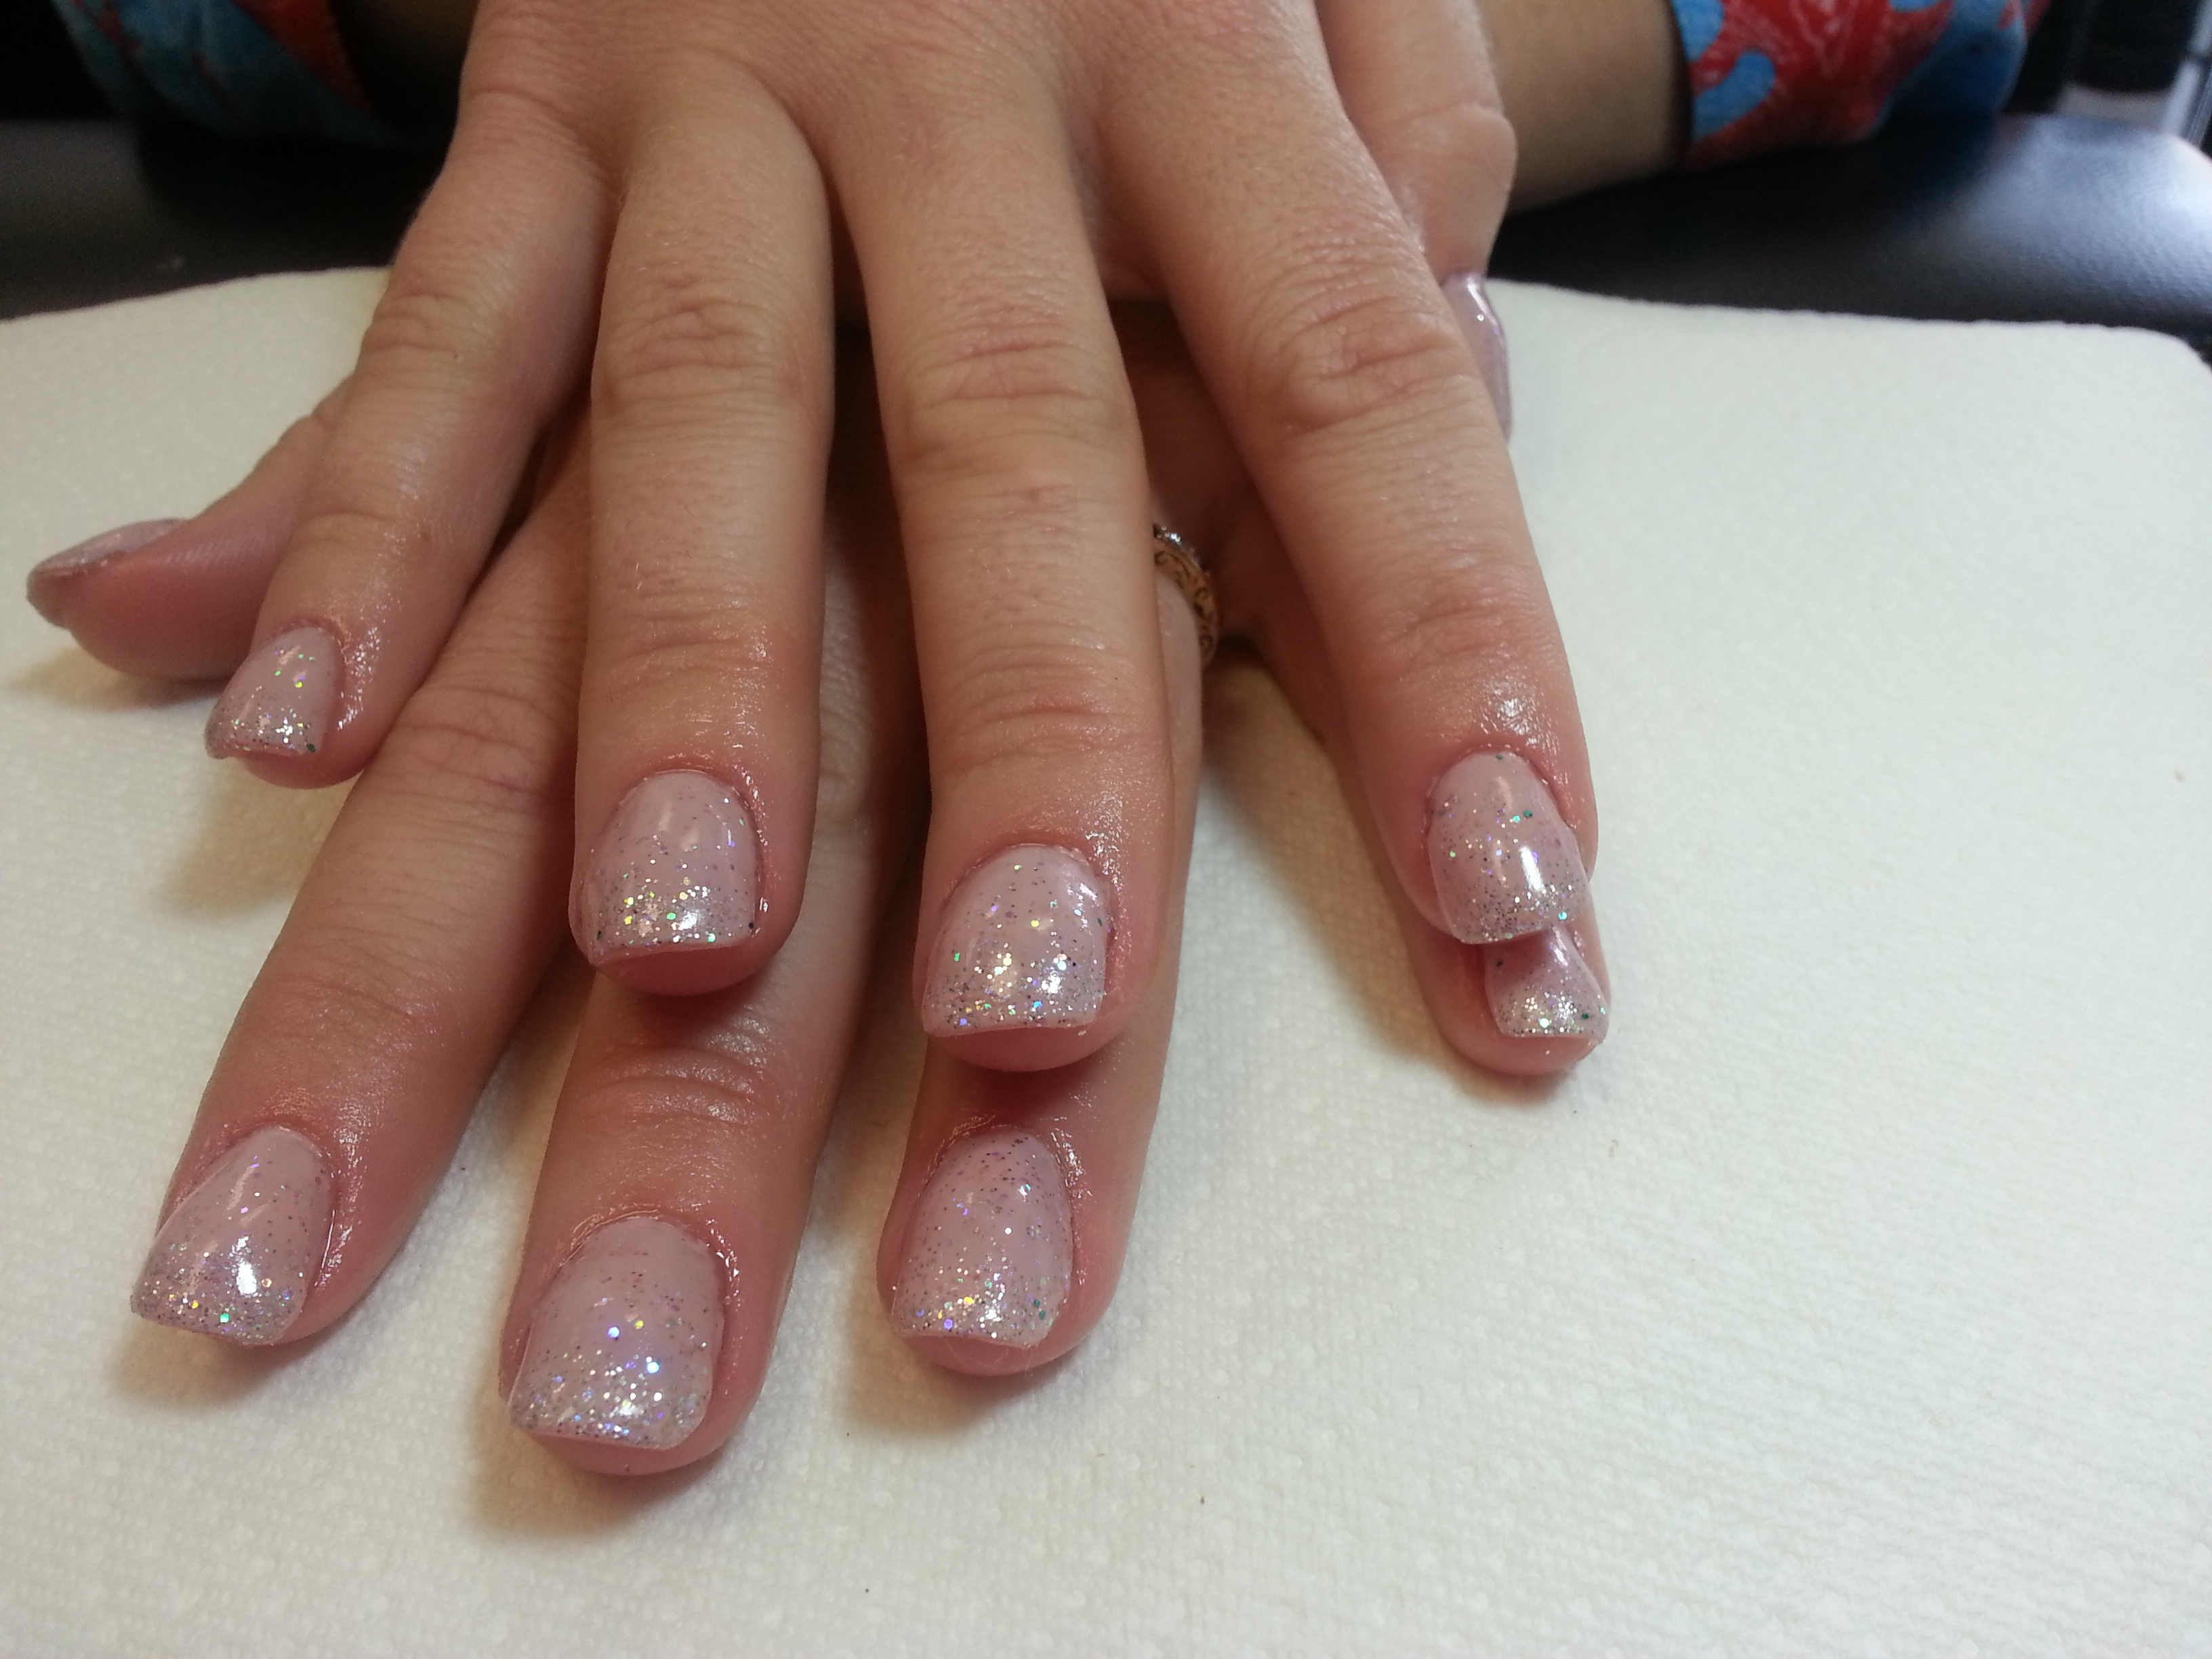 Touch Of Class Nails 3609 Austin Bluffs Pkwy Ste 18, Colorado ...